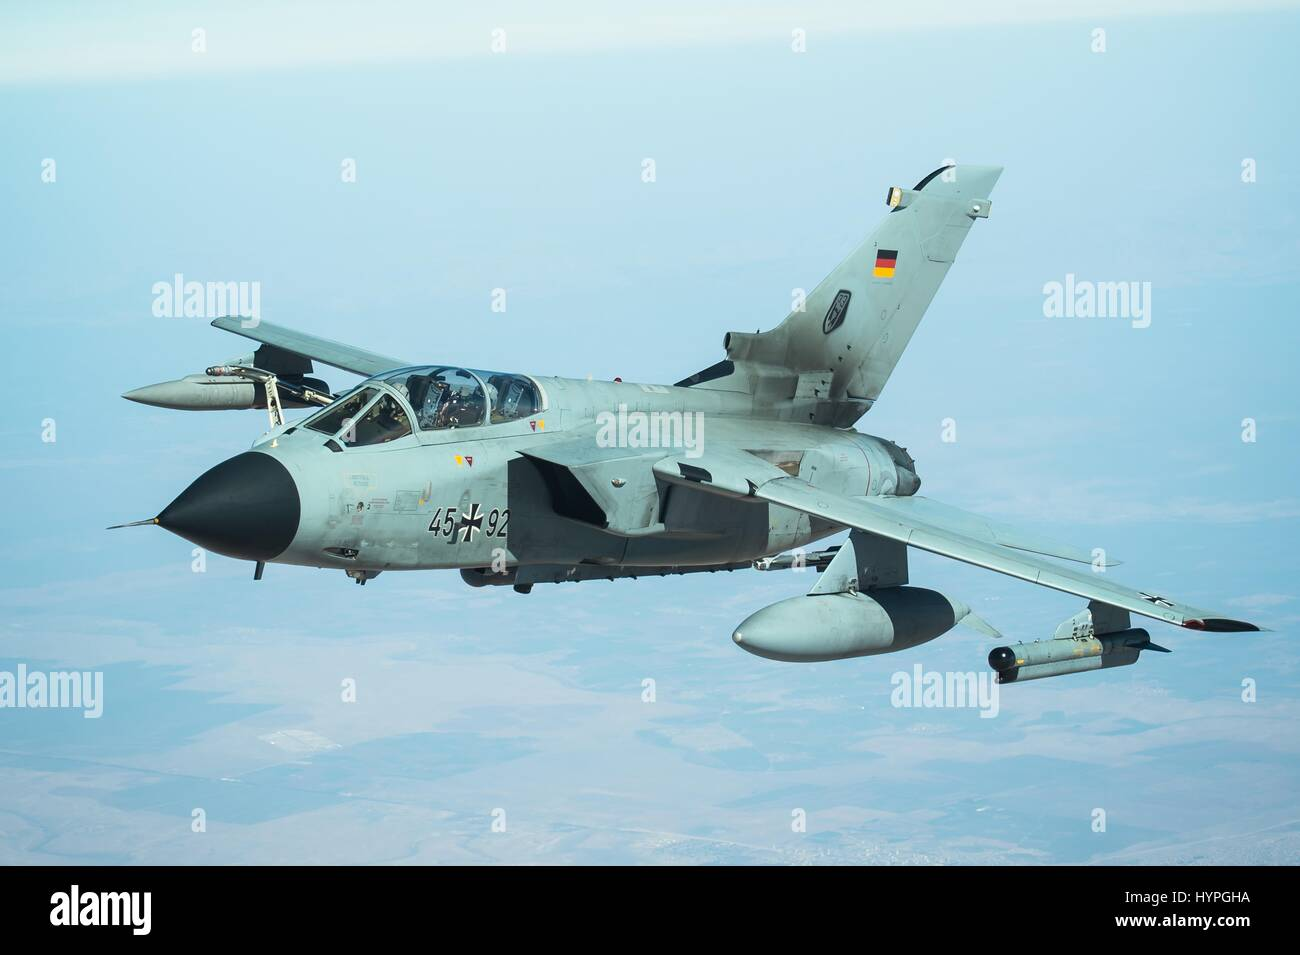 A German Air Force Tornado GR 4 attack aircraft in flight during Operation Inherent Resolve fighting the Islamic - Stock Image